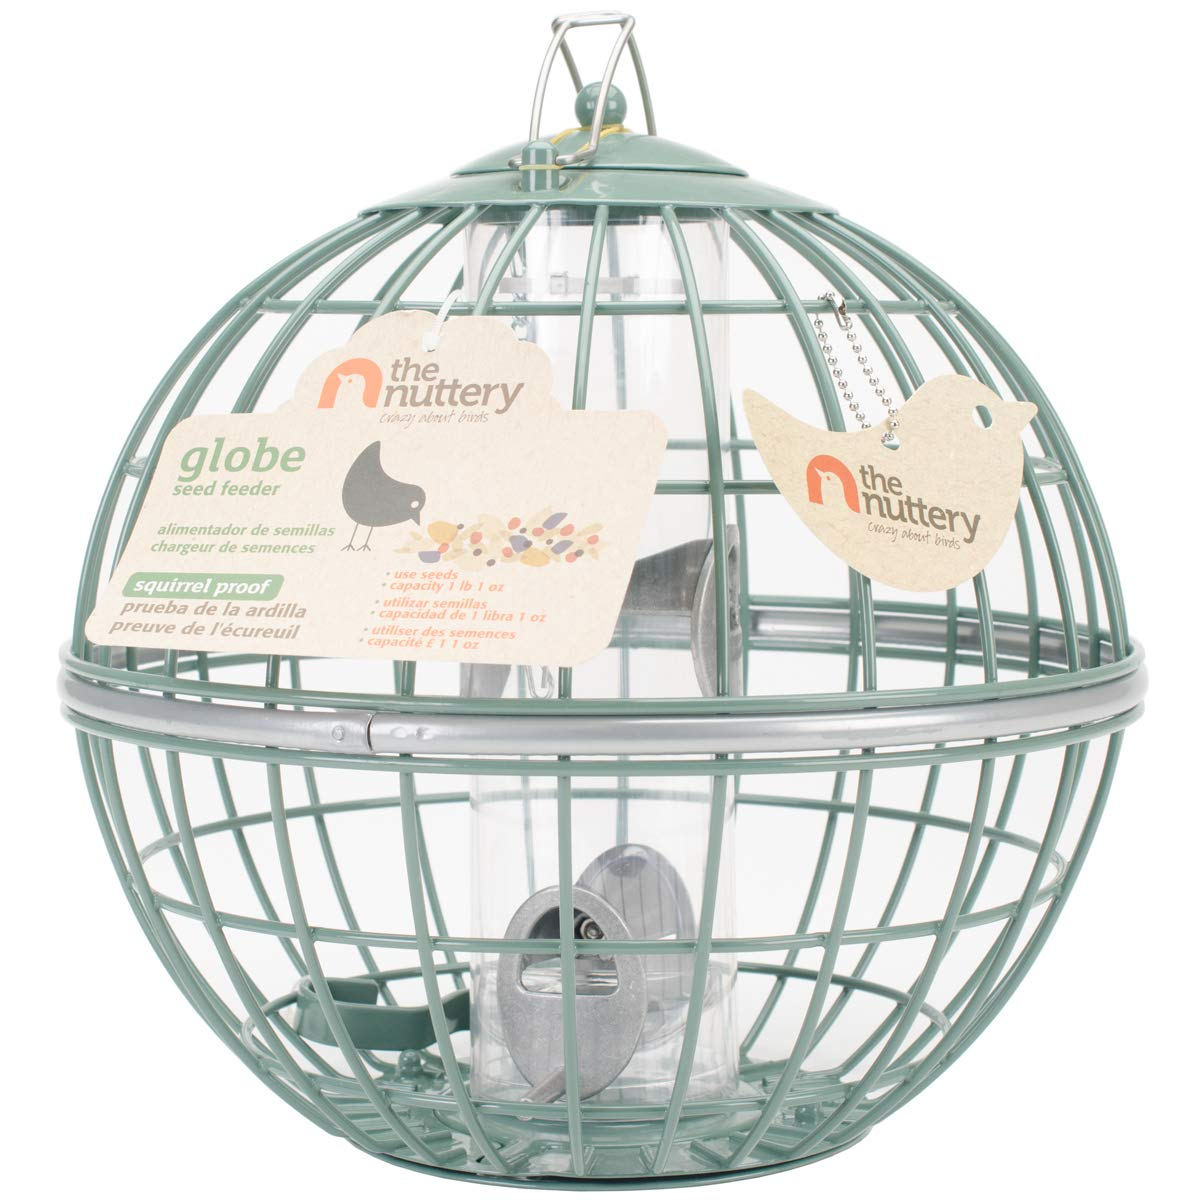 The Nuttery NT071 Globe Seed Feeder by The Nuttery